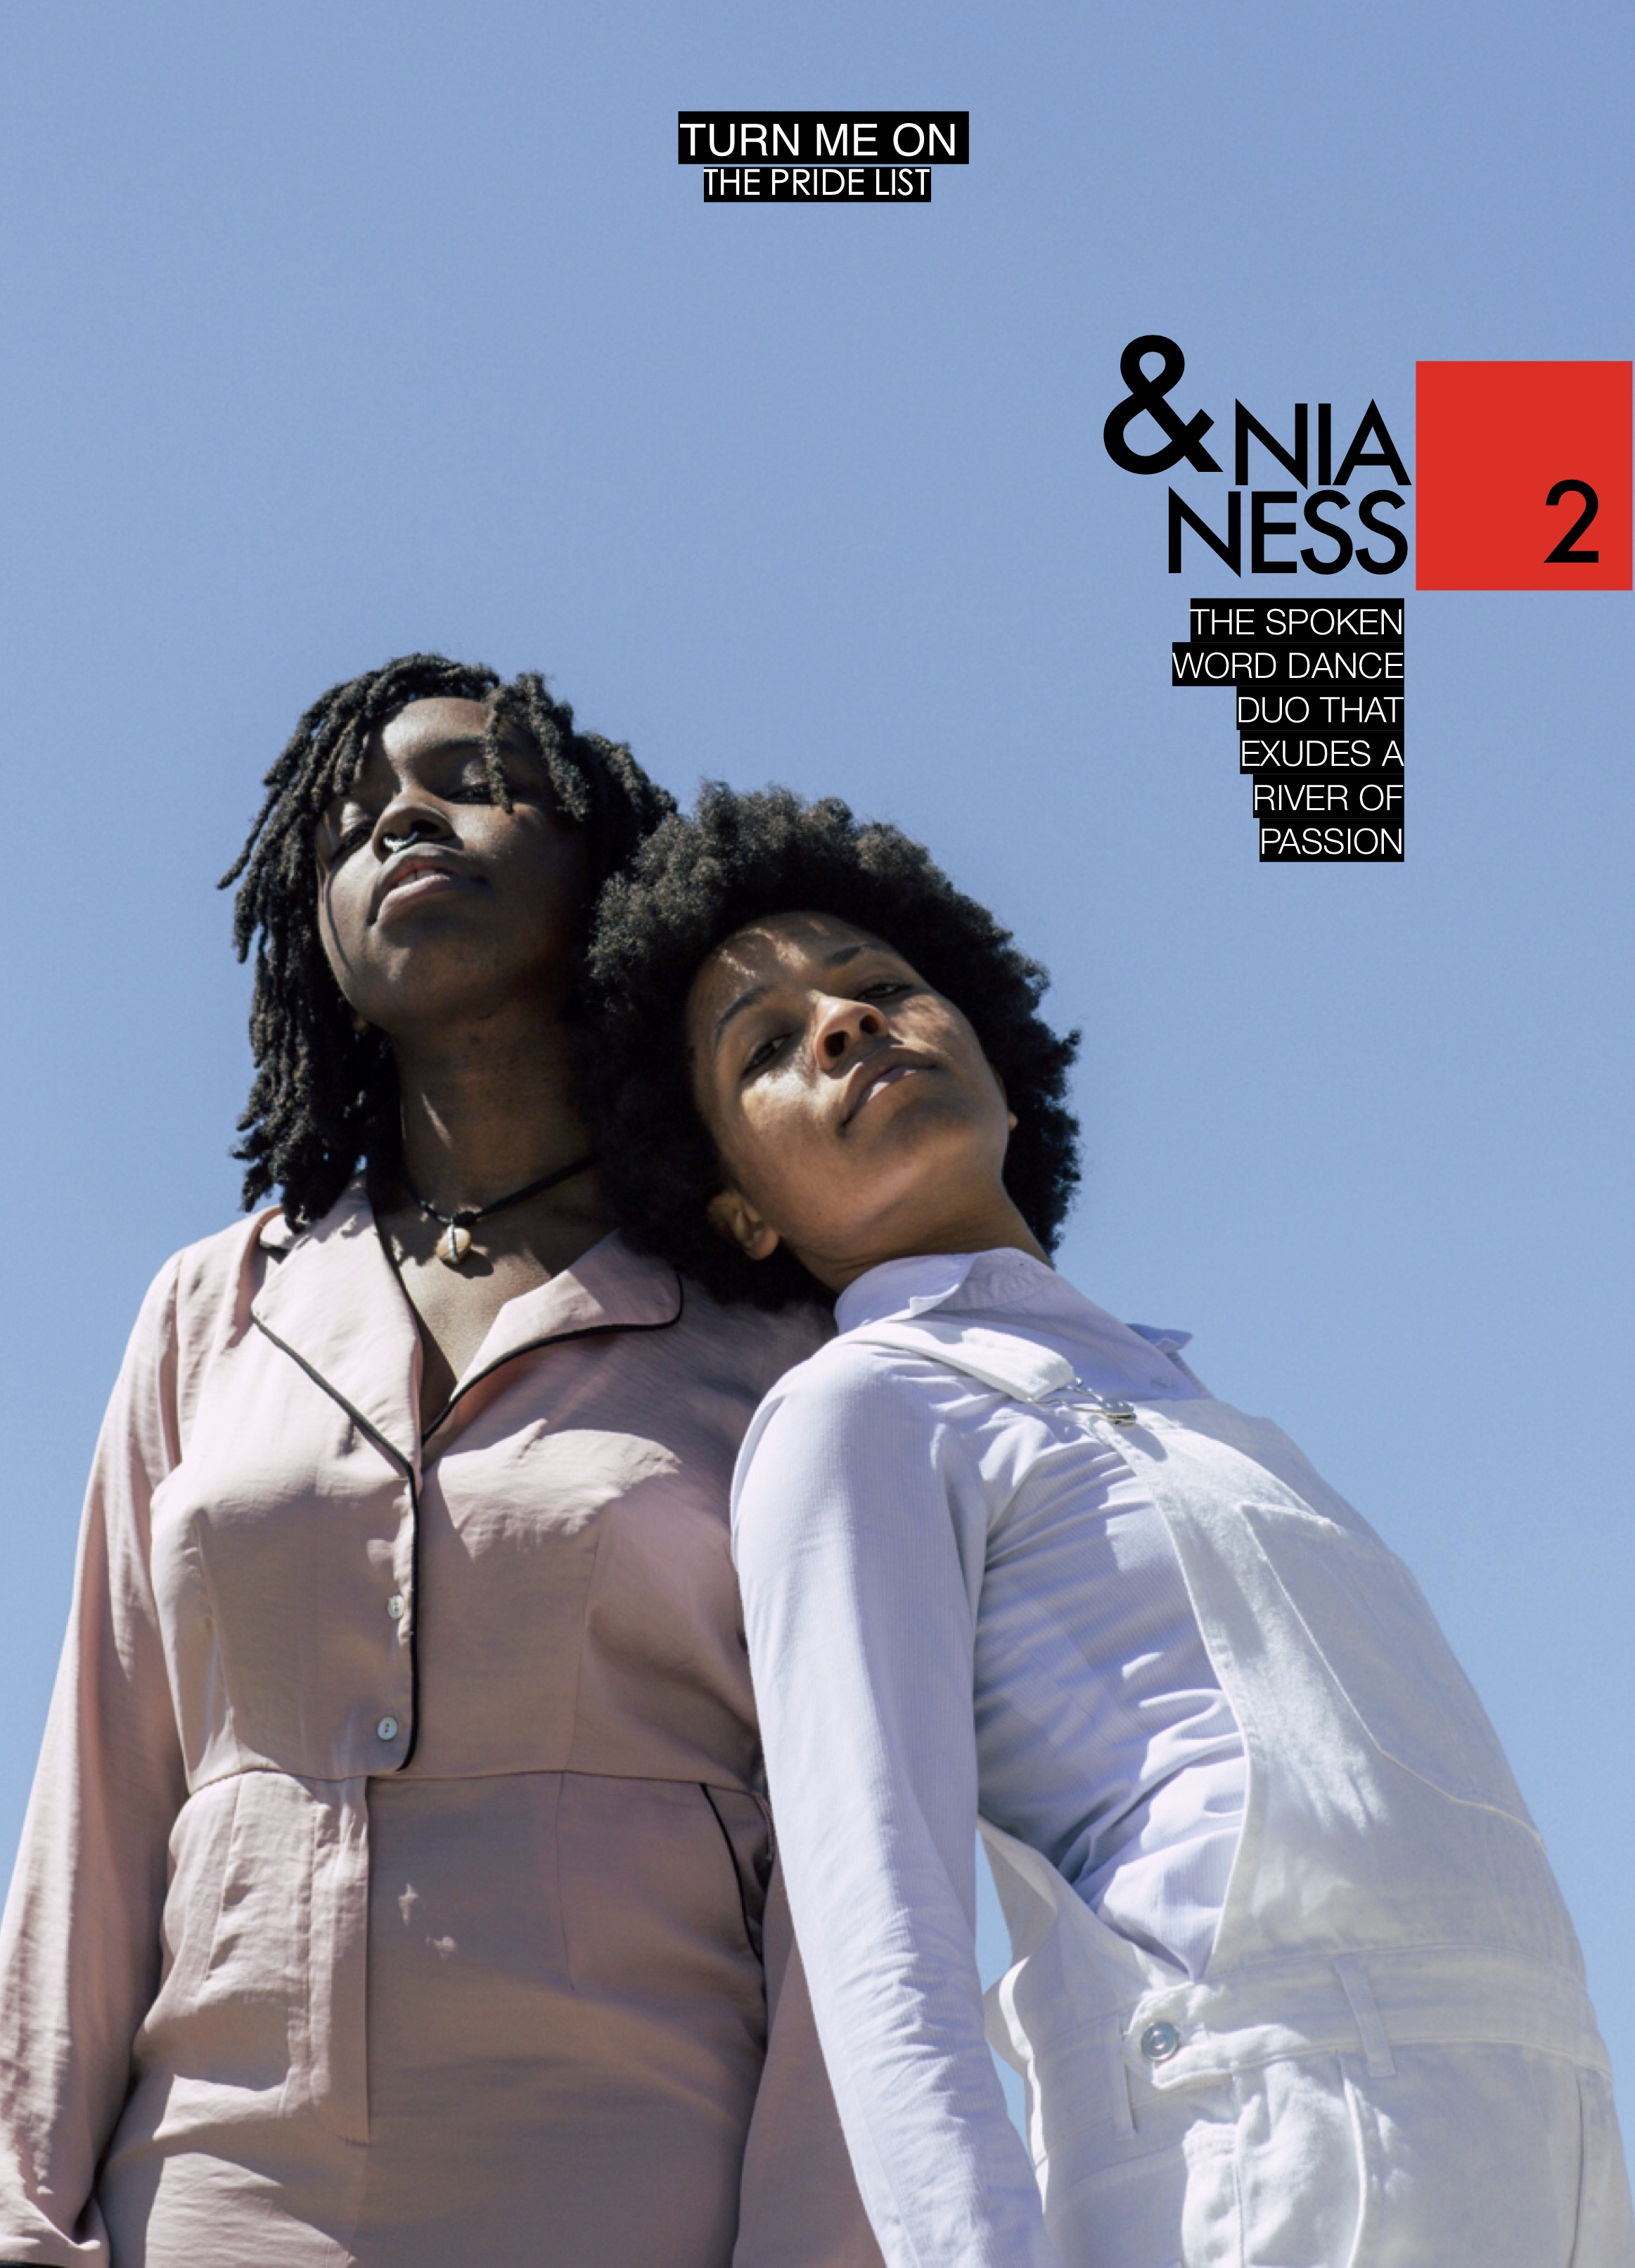 NIA & NESS X DBQ Magazine    Top 3 songs on your playlist this Summer?    Miss Me     by Leikei47    sex money feelings die by Lykke Li    She Bad     by Cardi B ft YG     Personal favorite pride to attend?    Brooklyn Pride. Though, we haven't been to Harlem Pride yet! (wink!)     What's your favorite thing to do on the beach?    Frolick together and cuddle in the water    Swimming pool or ocean?    Ocean      Poetry or a novel?    Poetry    Cocktail or a joint?    Cocktail    One thing you want to achieve by the end of the Summer?    We want to start going out more and really taking in NYC. We are such lesbians! What we mean by that is we love staying home with wine and our cats, ordering food in and catching up on/ binge watching our shows. If we have the time, we want to start going out at least once a week even if it's just grabbing a drink during happy hour.     What makes you smile?    We make each other smile every day    Lay on the beach or lay by the pool?    beach    What is something that people should know about your work?    Our work is extremely honest, heartfelt and vulnerable.  feel about it    When was the best sex of your life this far?    2018-06-17      Who do you want to be the next president?    Oprah 2020!! because need a black woman in the oval office and Michelle Obama needs a break from DC!    What makes you proud?    Each other! Living together and working together, we get to see and experience the daily growth that others might not get to see and its such a beautiful thing. We have been a couple for over 5 years and working together professionally for over 2 years, and seeing how far we have come individually and as a unit is incredible.